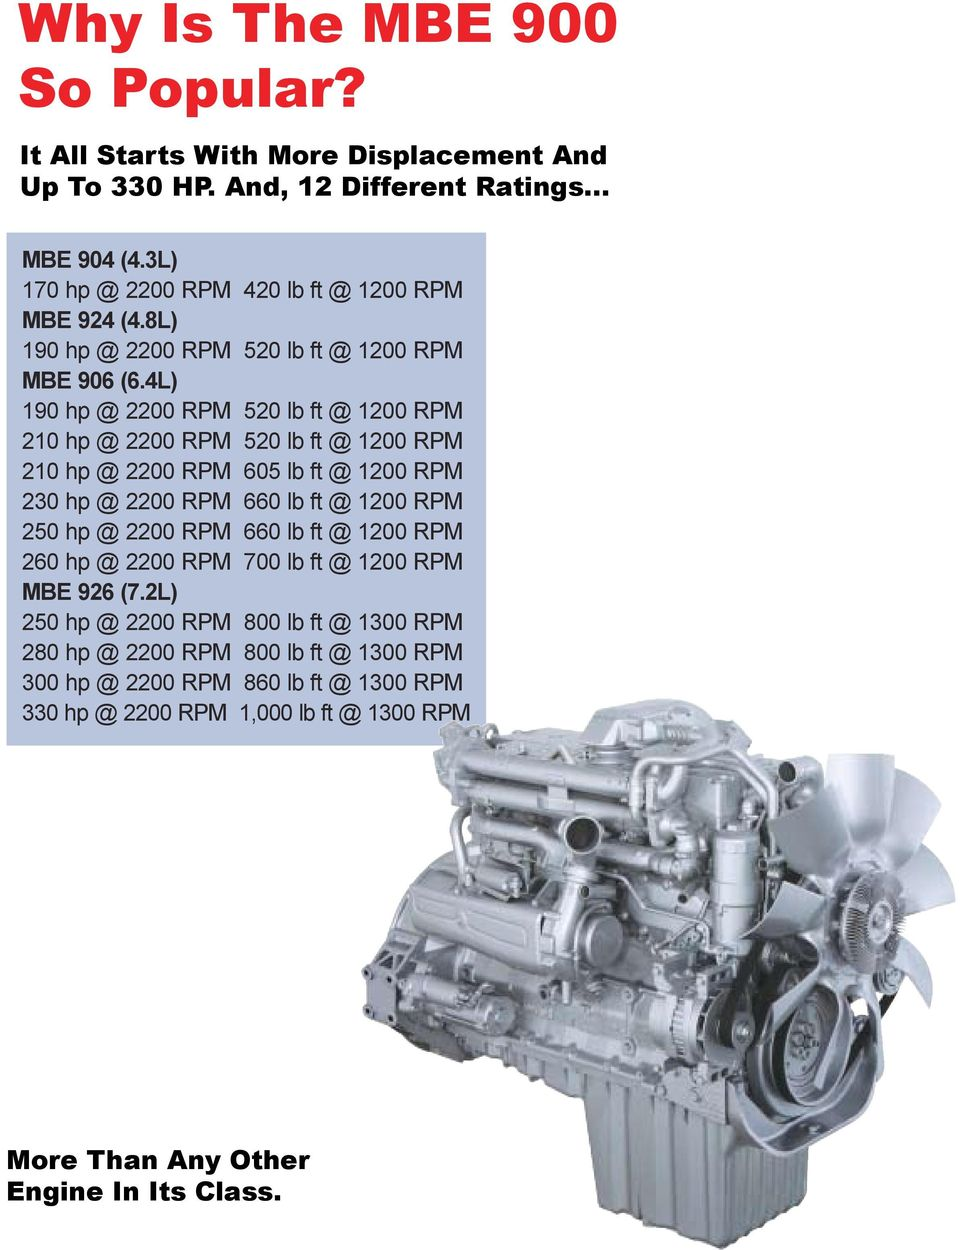 4L) 190 hp @ 2200 RPM 520 lb ft @ 1200 RPM 210 hp @ 2200 RPM 520 lb ft @ 1200 RPM 210 hp @ 2200 RPM 605 lb ft @ 1200 RPM 230 hp @ 2200 RPM 660 lb ft @ 1200 RPM 250 hp @